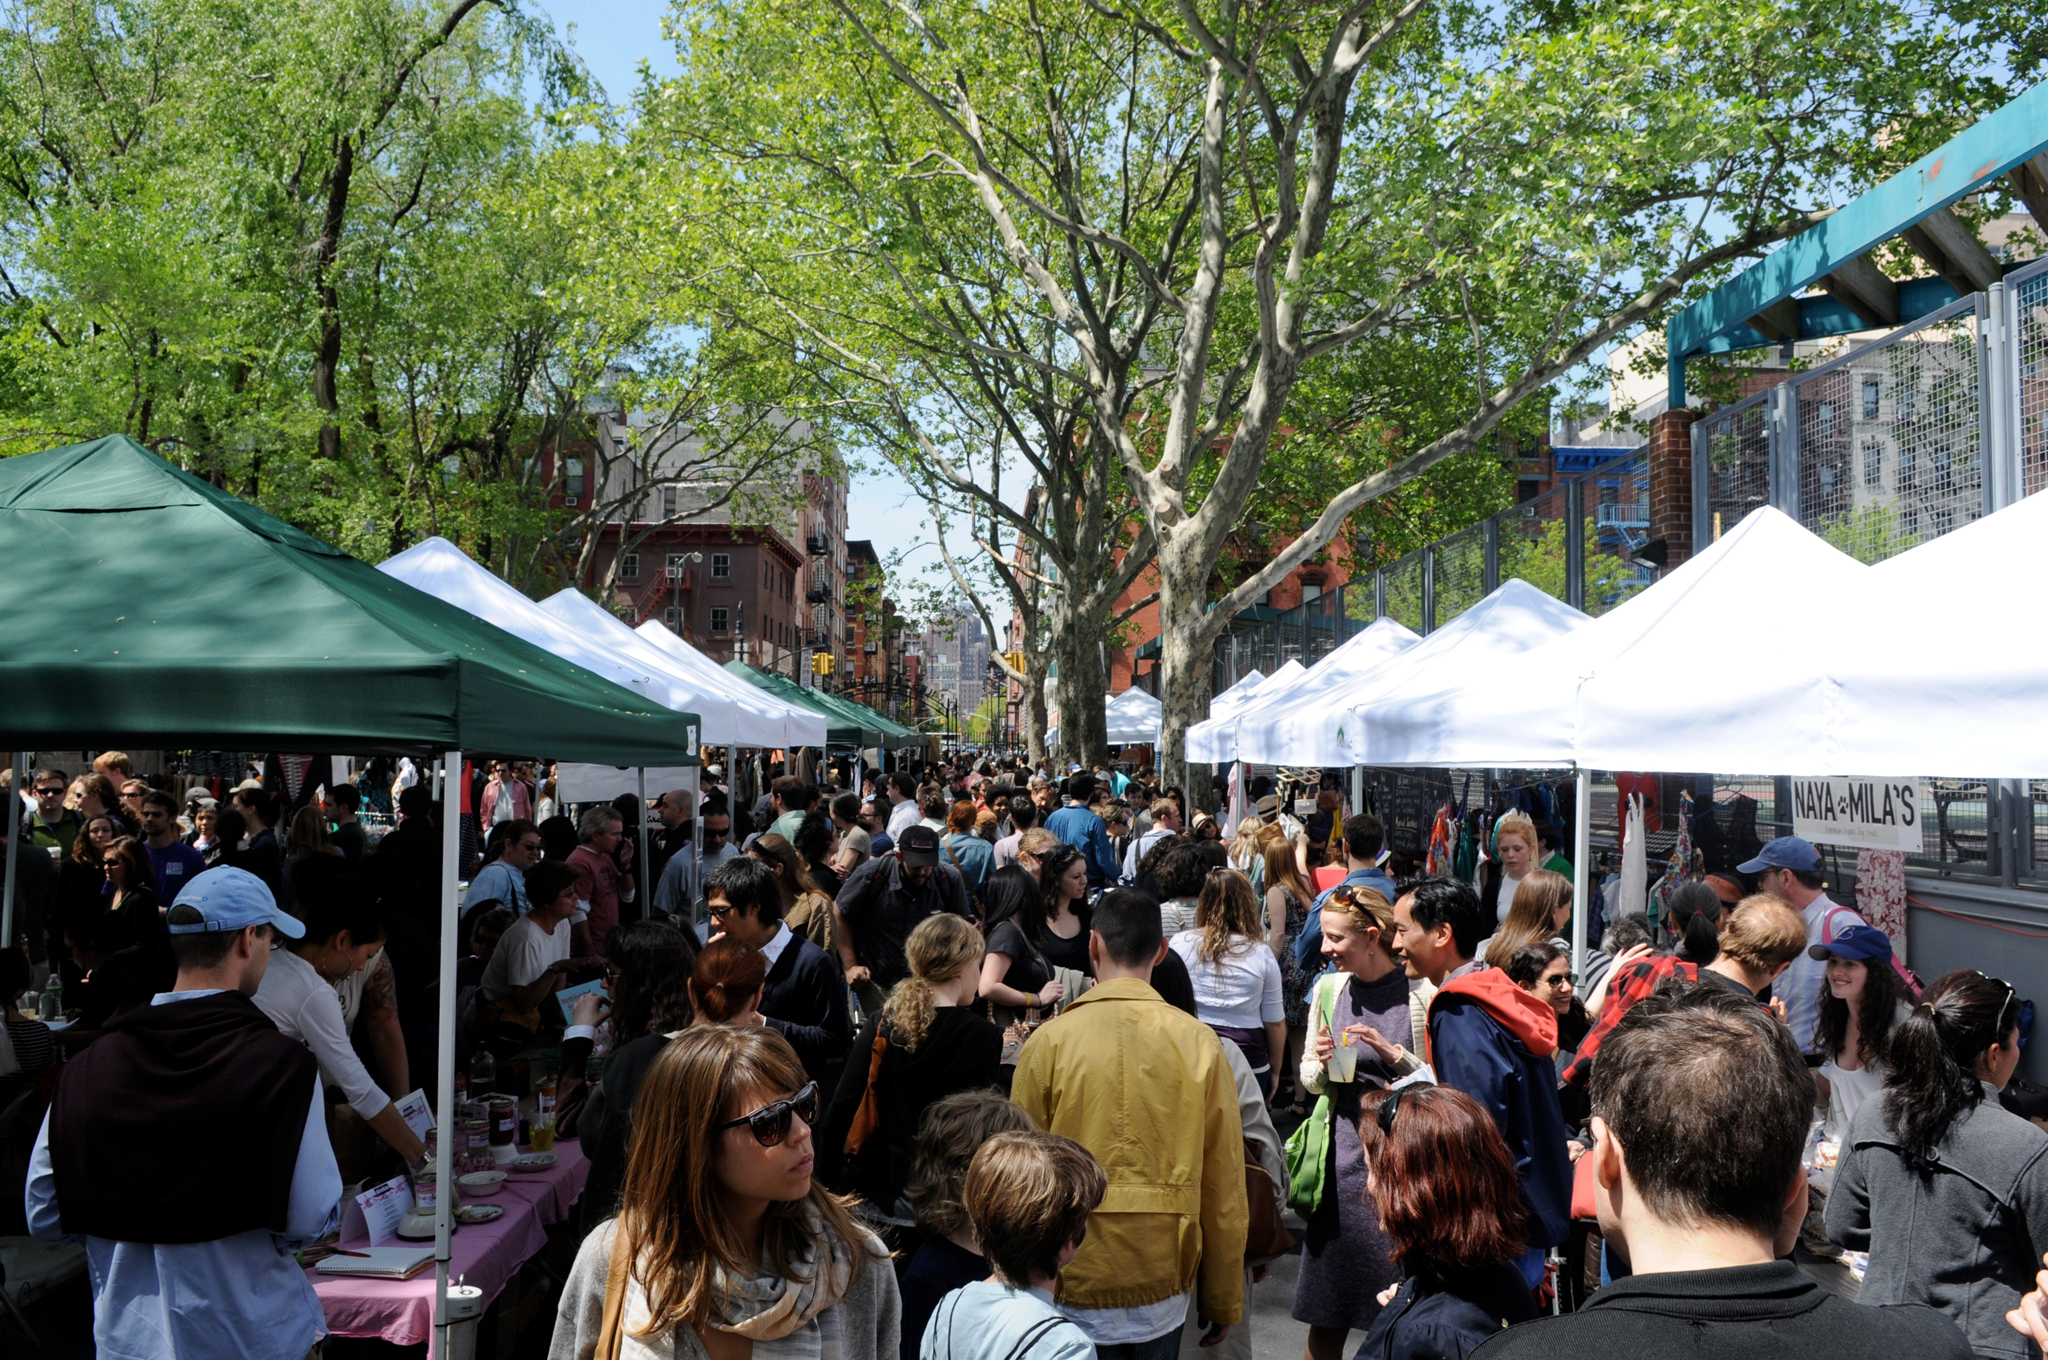 Buy handmade goods at Hester Street Fair